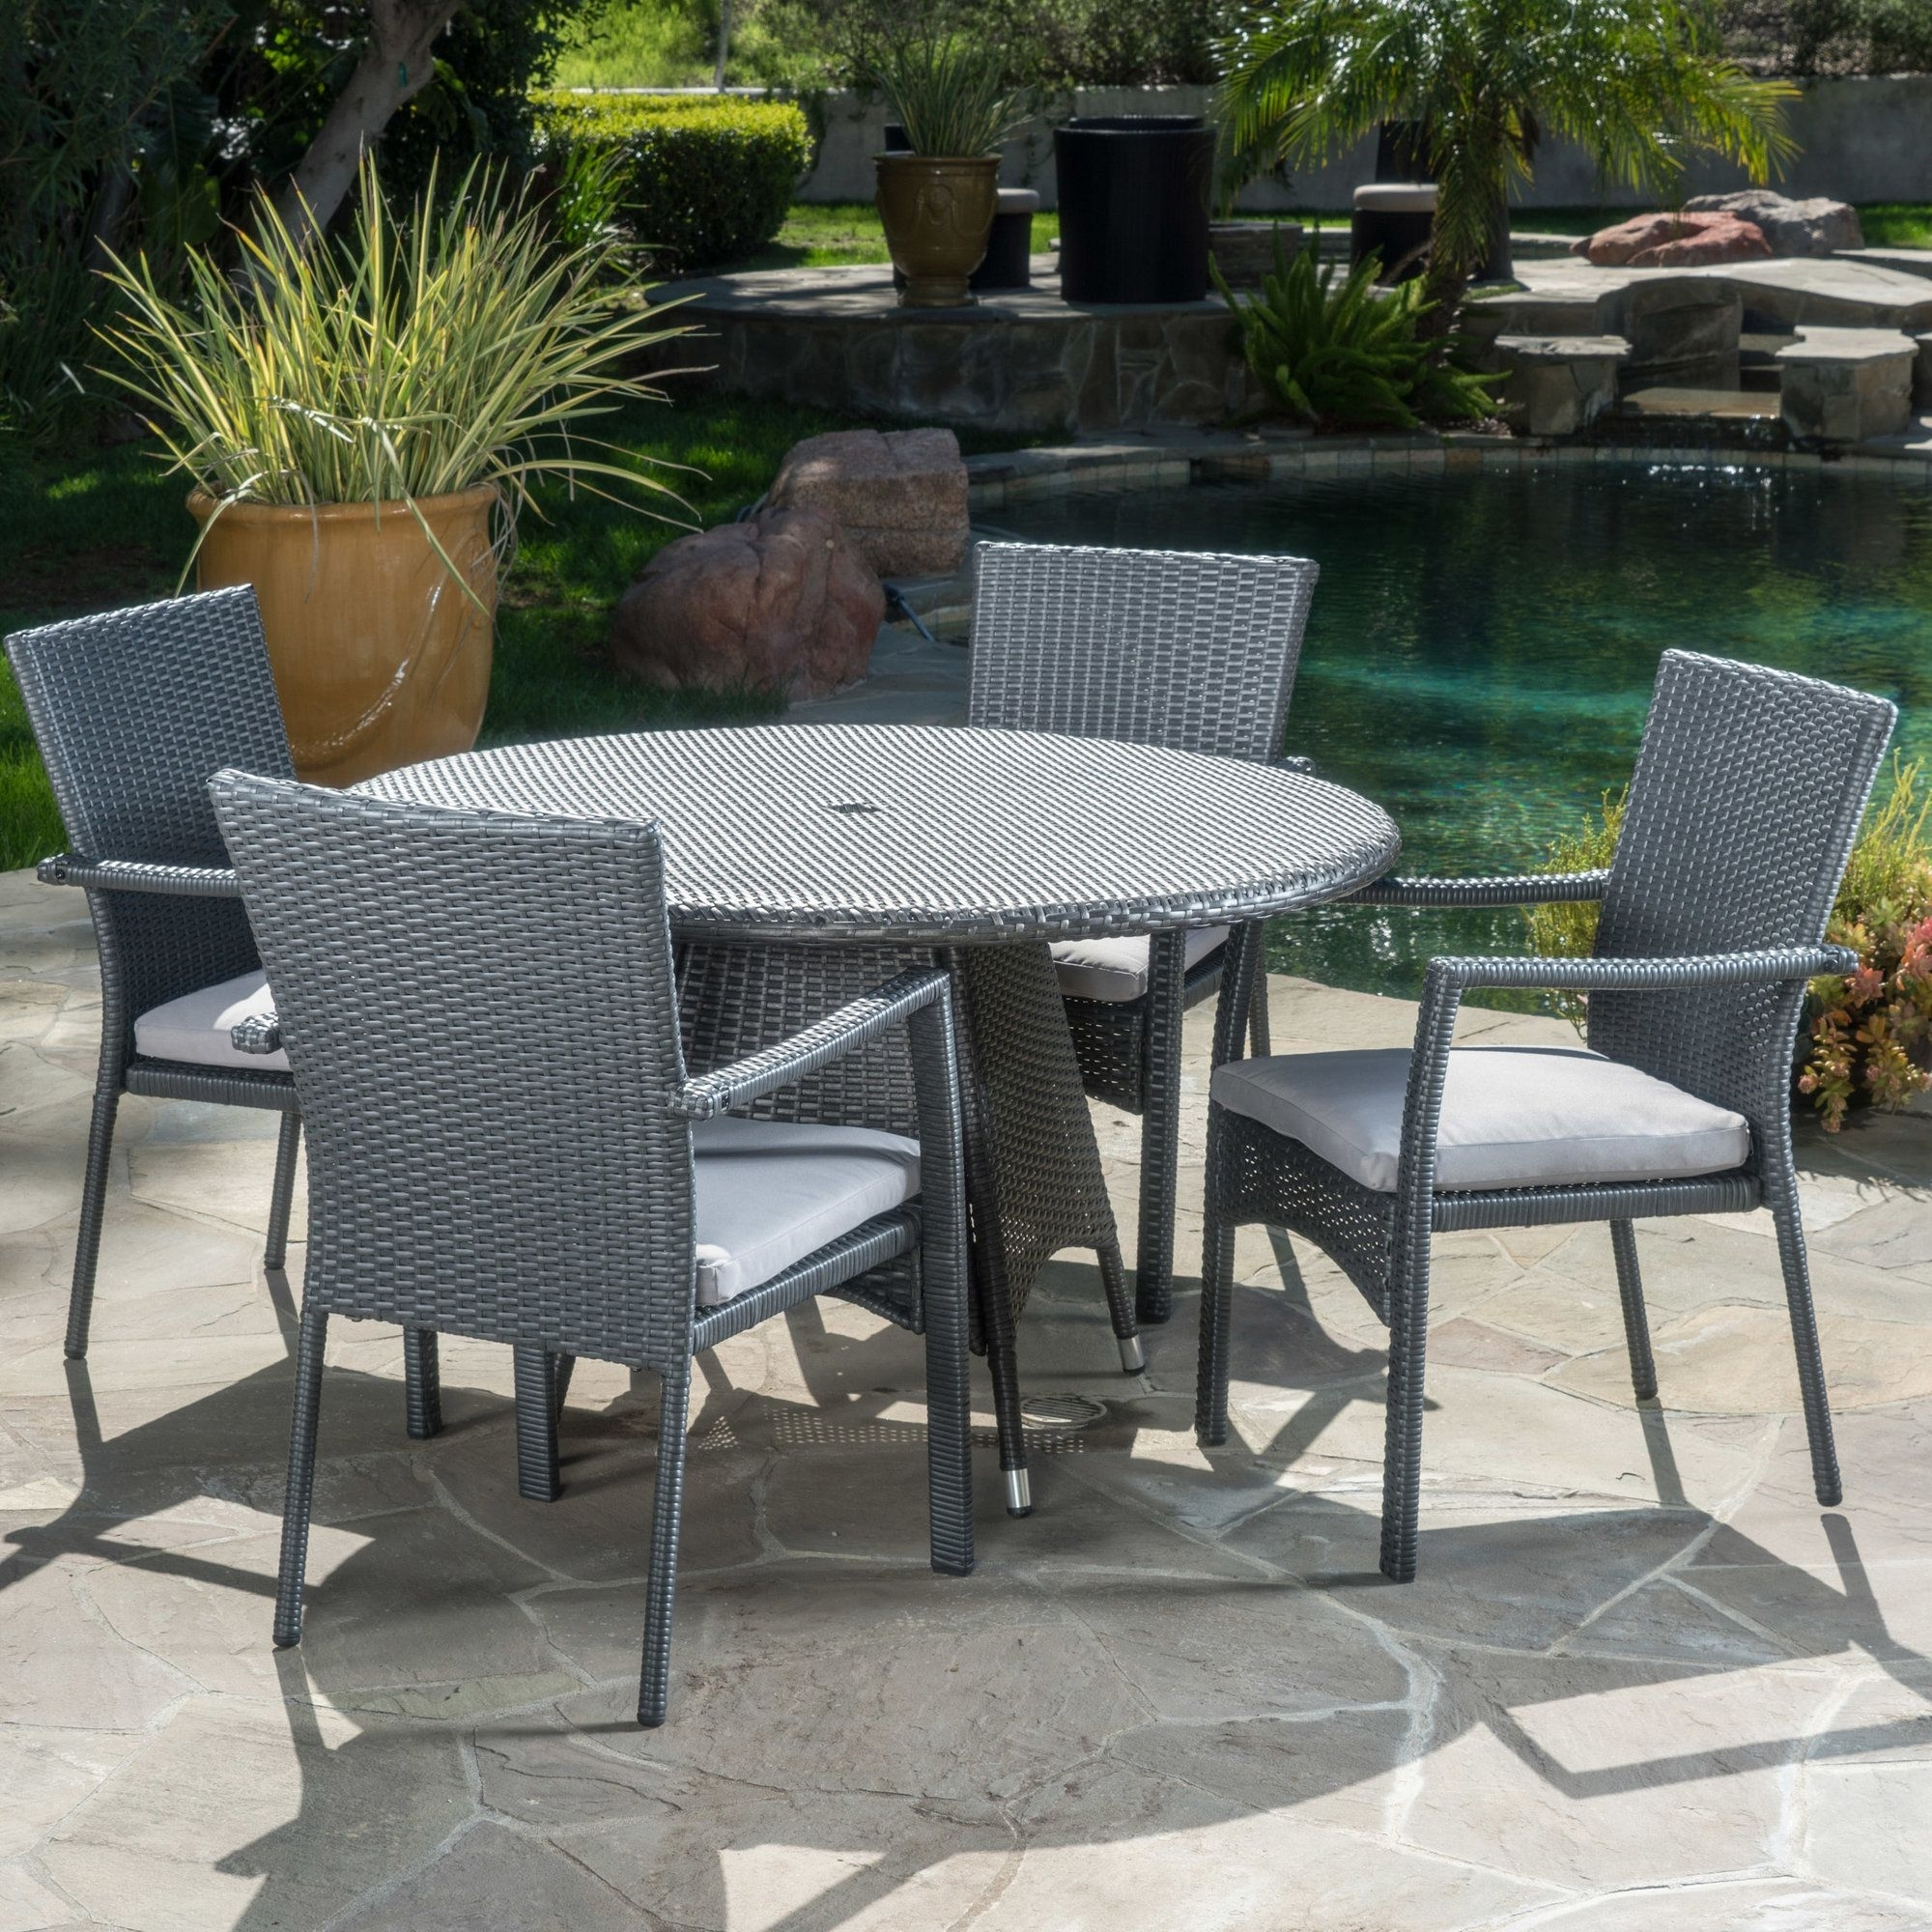 Brandon 5 Piece Dining Set With Cushion | Products | Pinterest With Current Cora 5 Piece Dining Sets (Image 11 of 20)